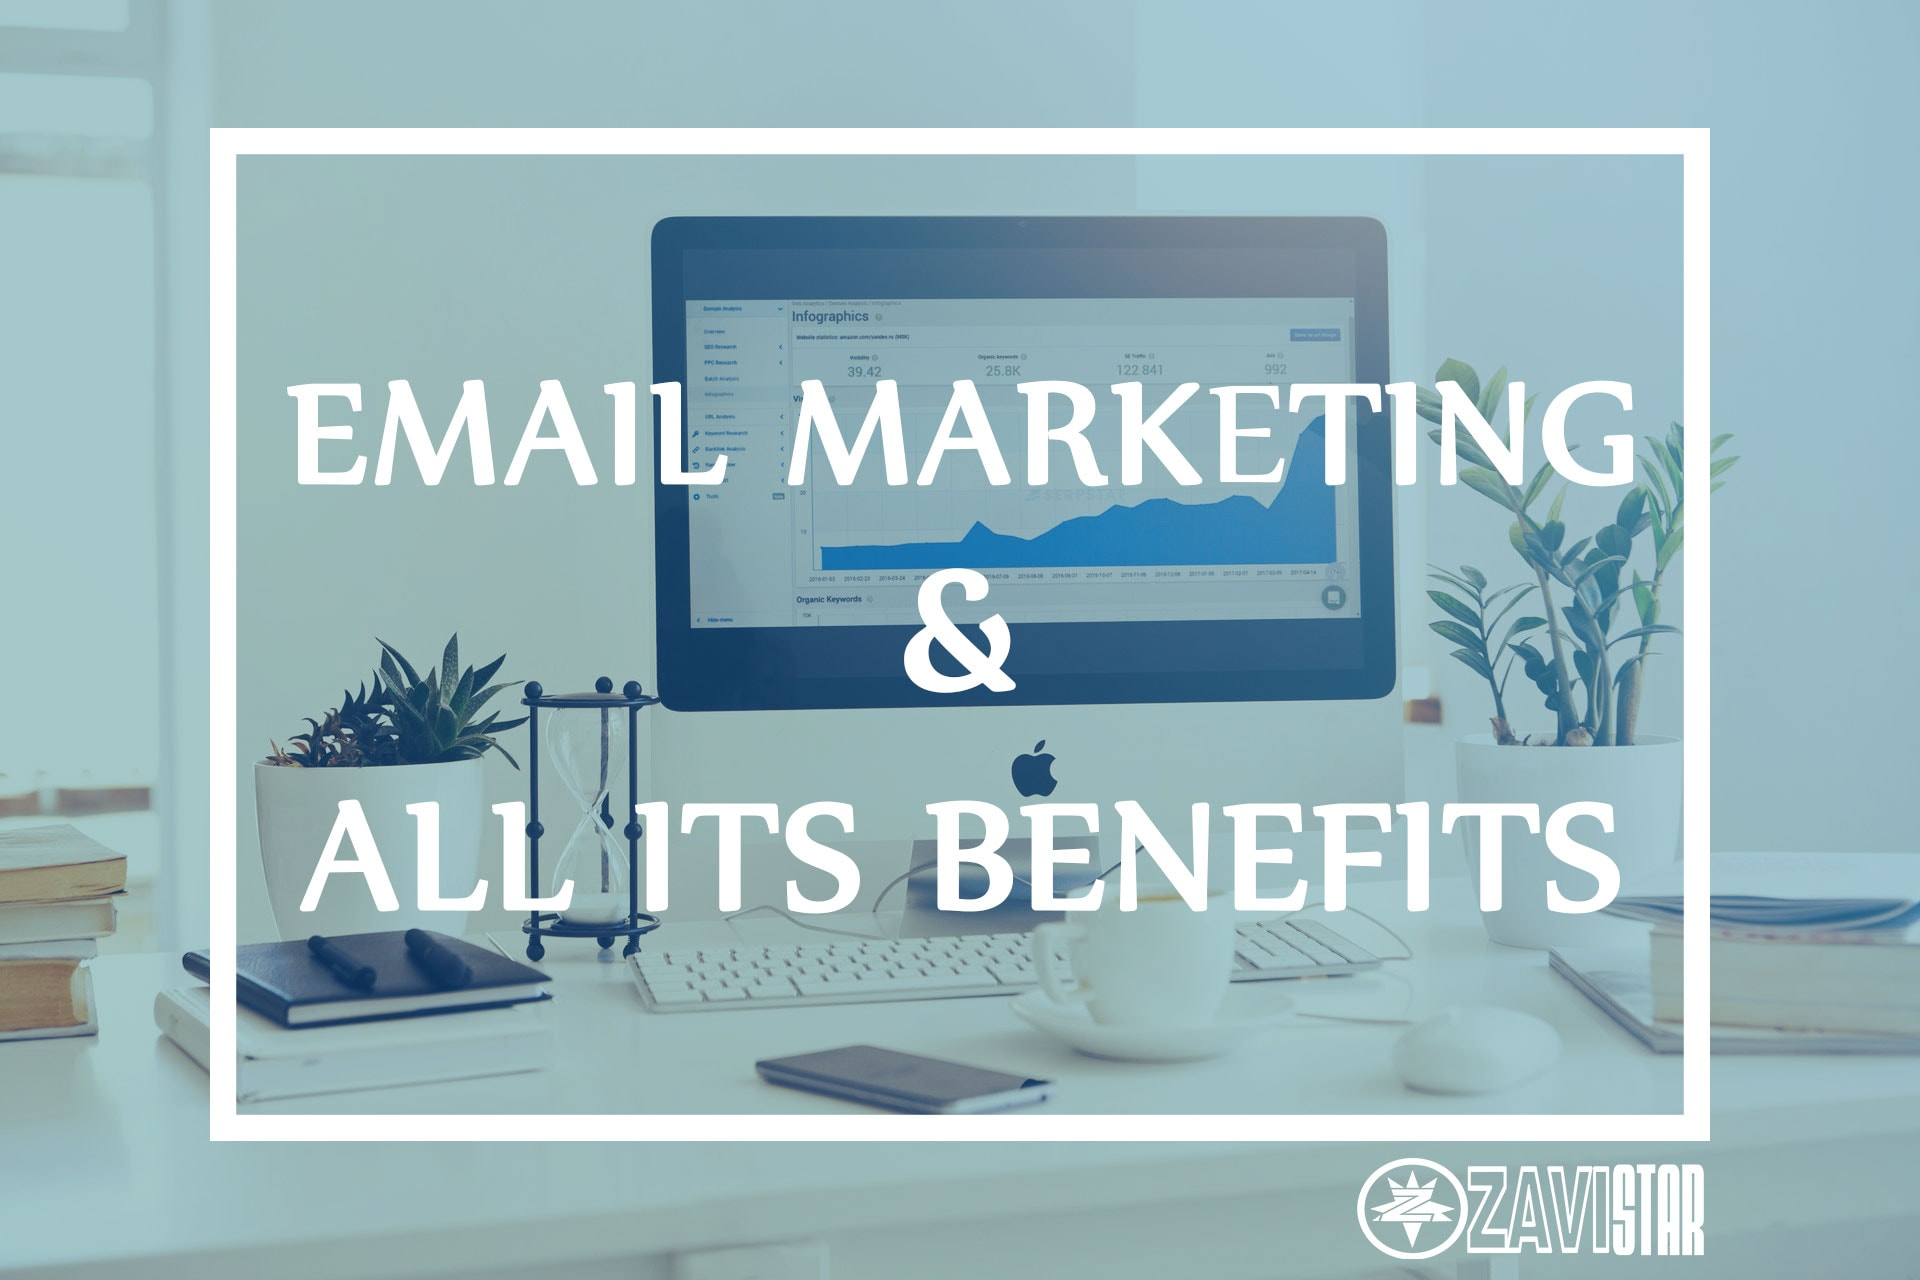 What Is Email Marketing And Its Benefits Vhs Freelance Web Designer